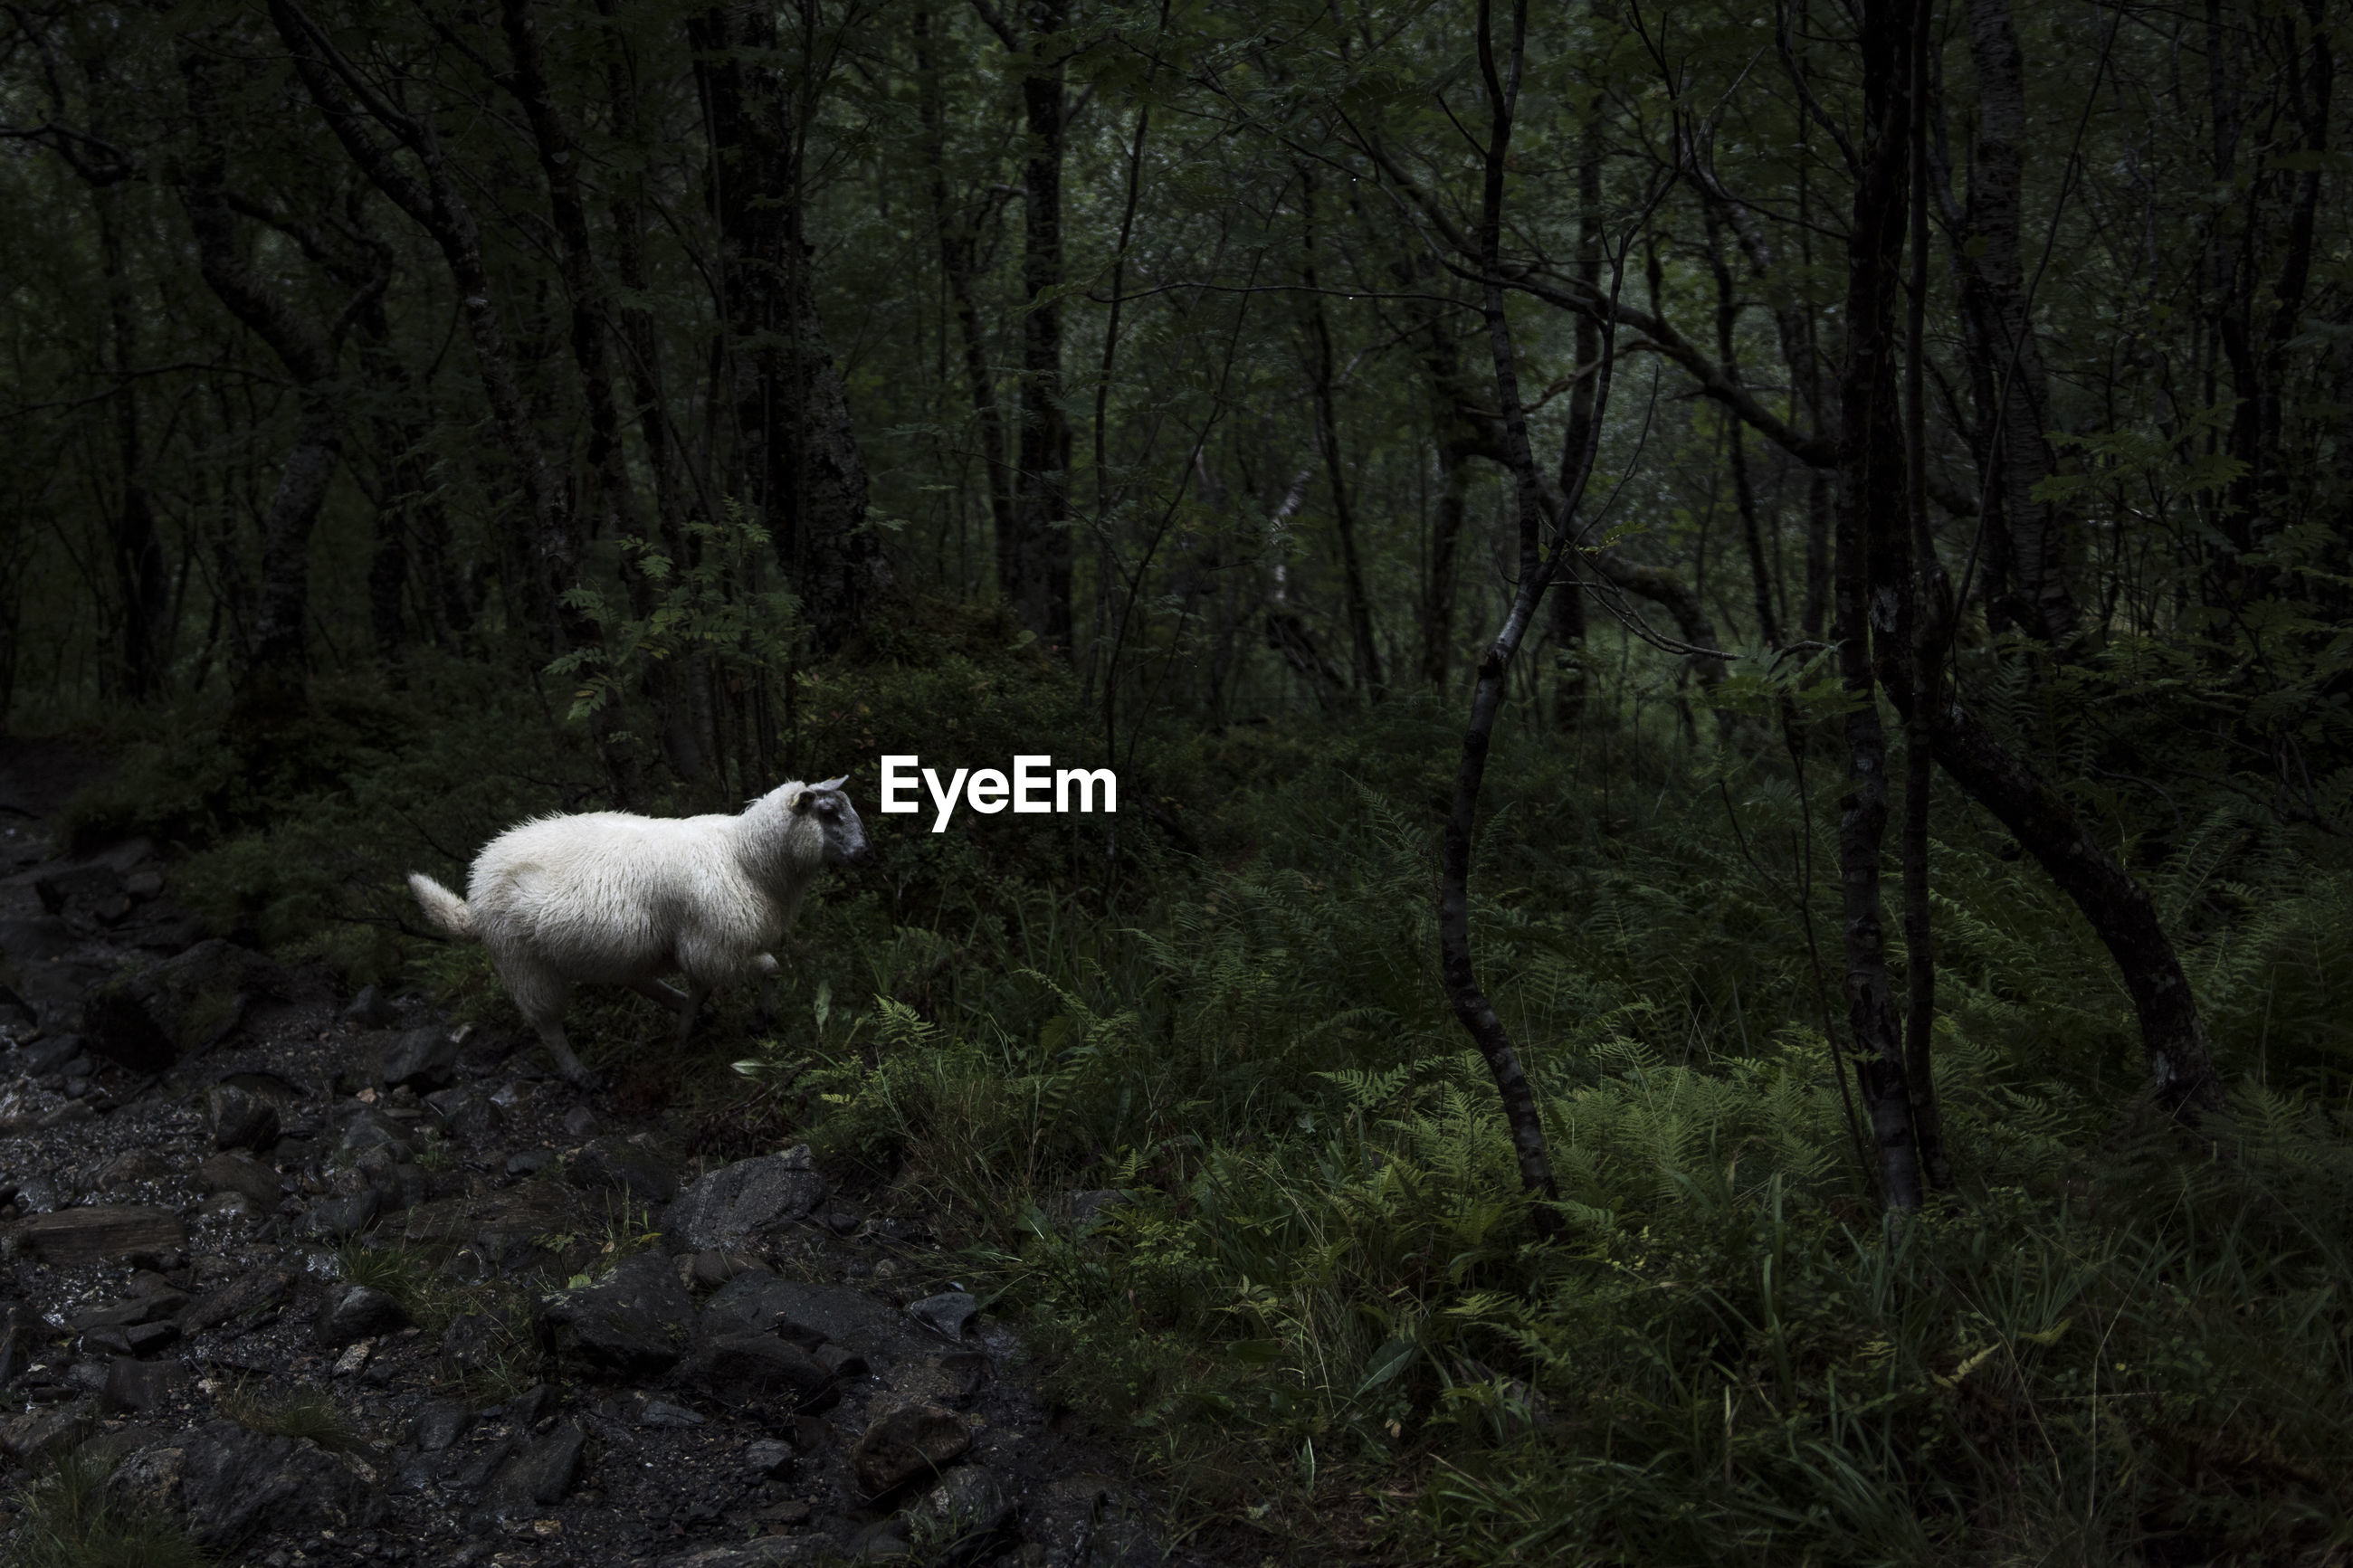 VIEW OF SHEEP IN FOREST